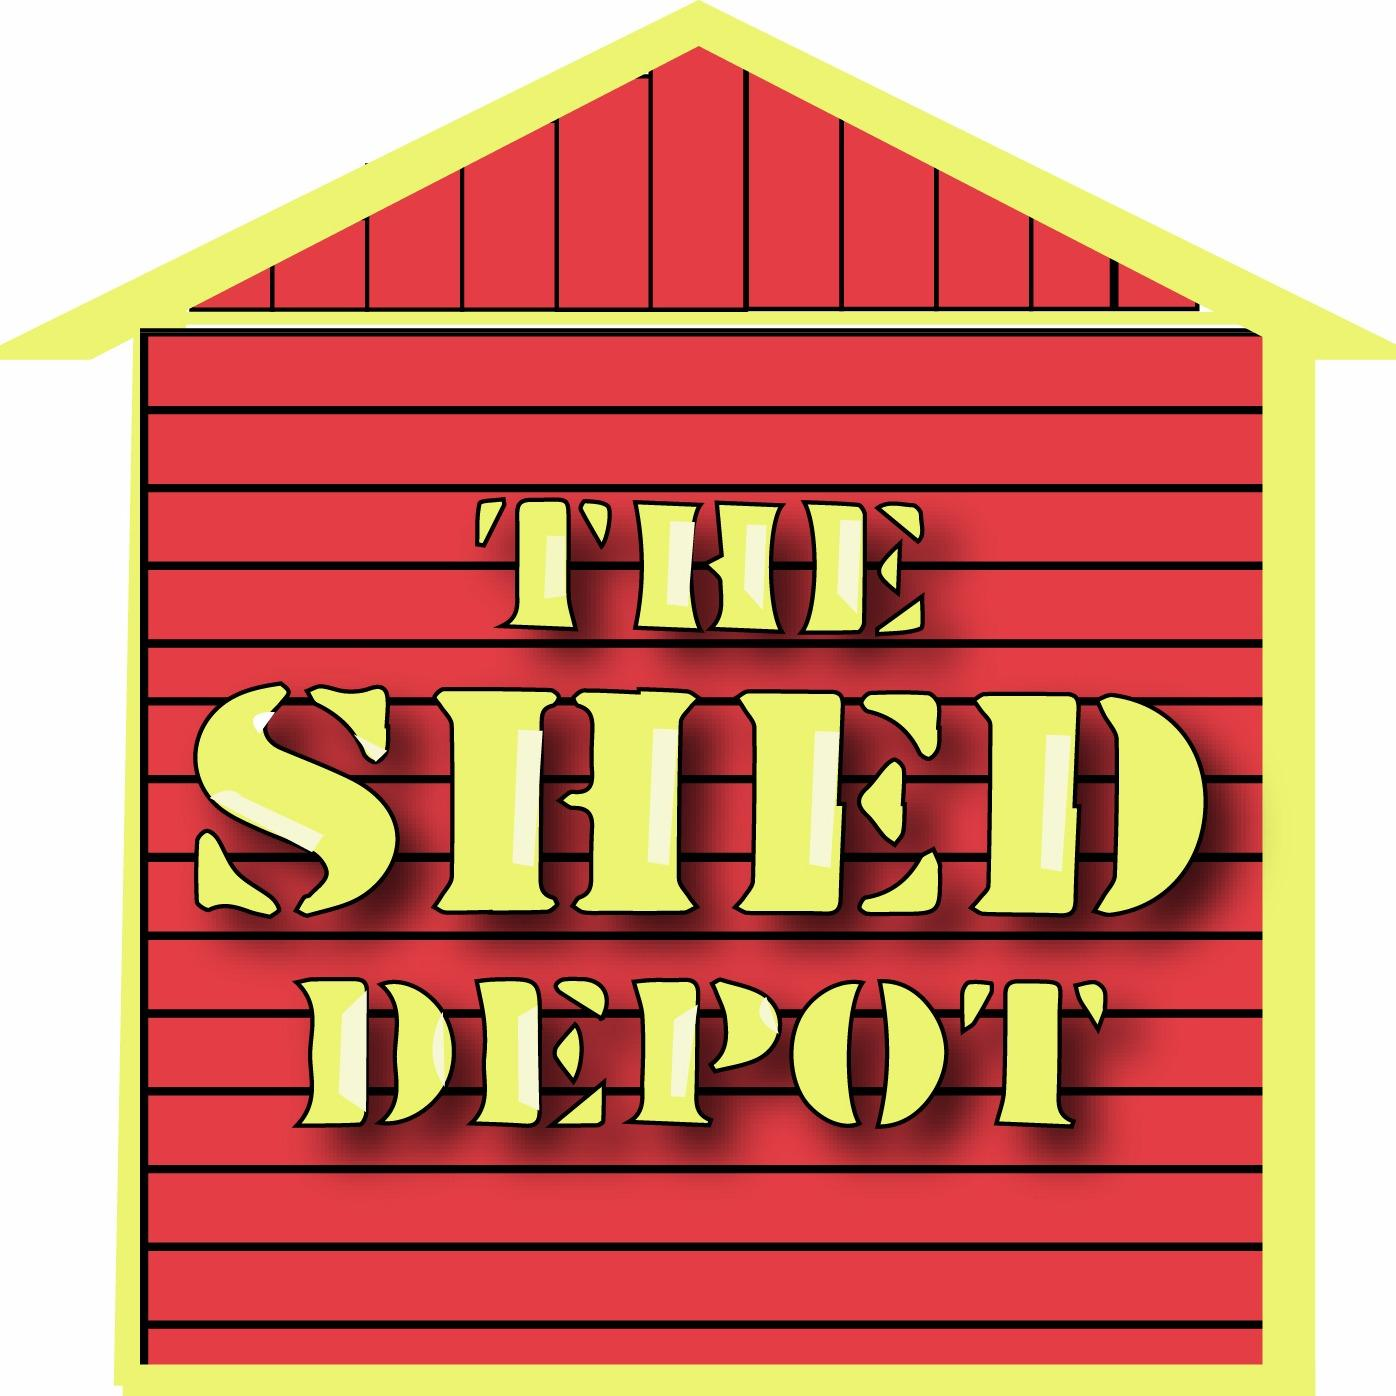 Shed Depot & Shed Guy Services Inc.